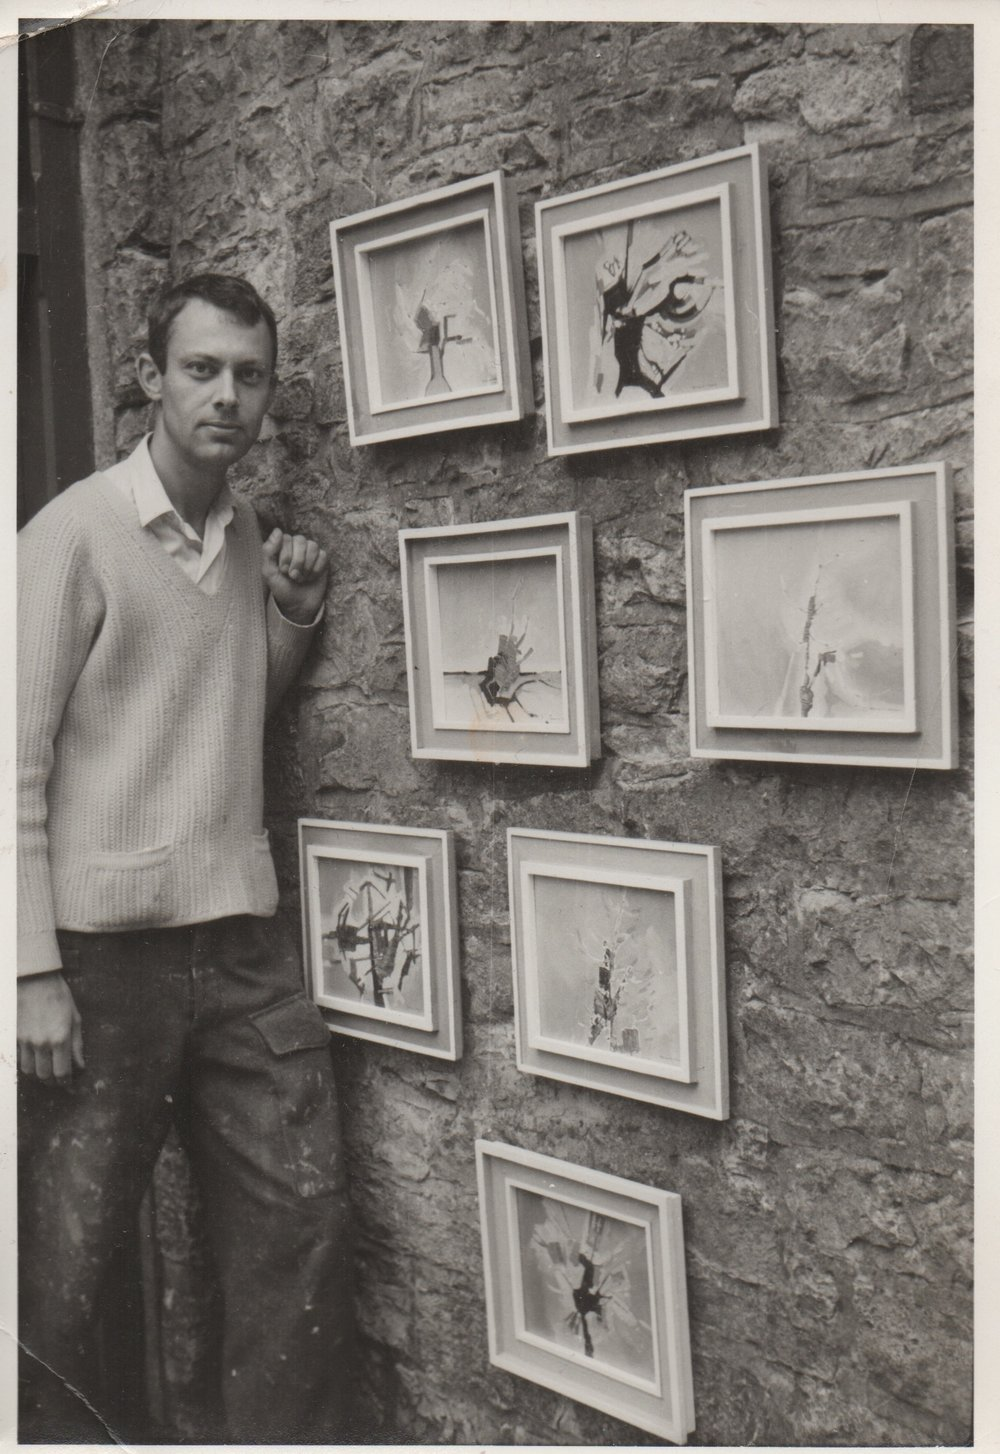 Robert Genn with his early abstracts at Bradbourne near Ashbourne, Derbyshire, England circa 1965.